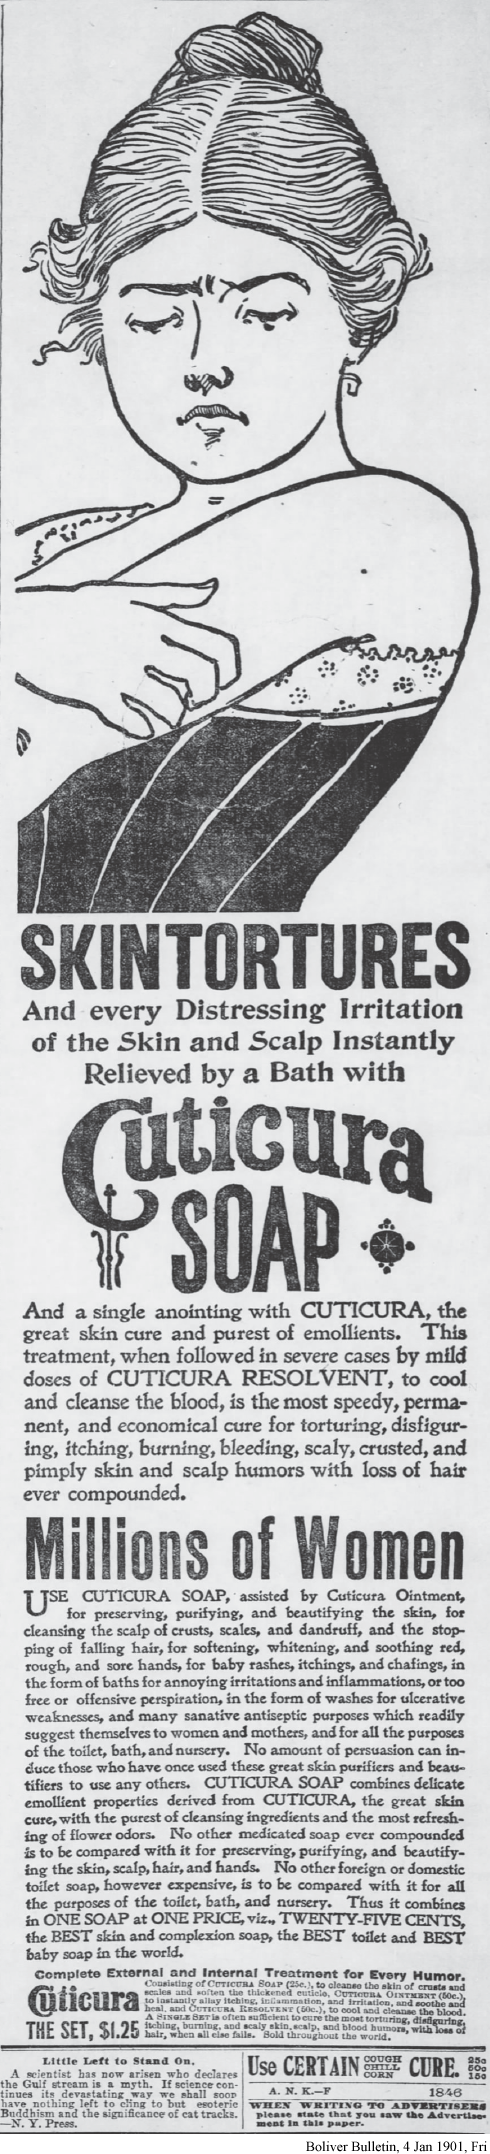 Cuticura Soap for skin tortures